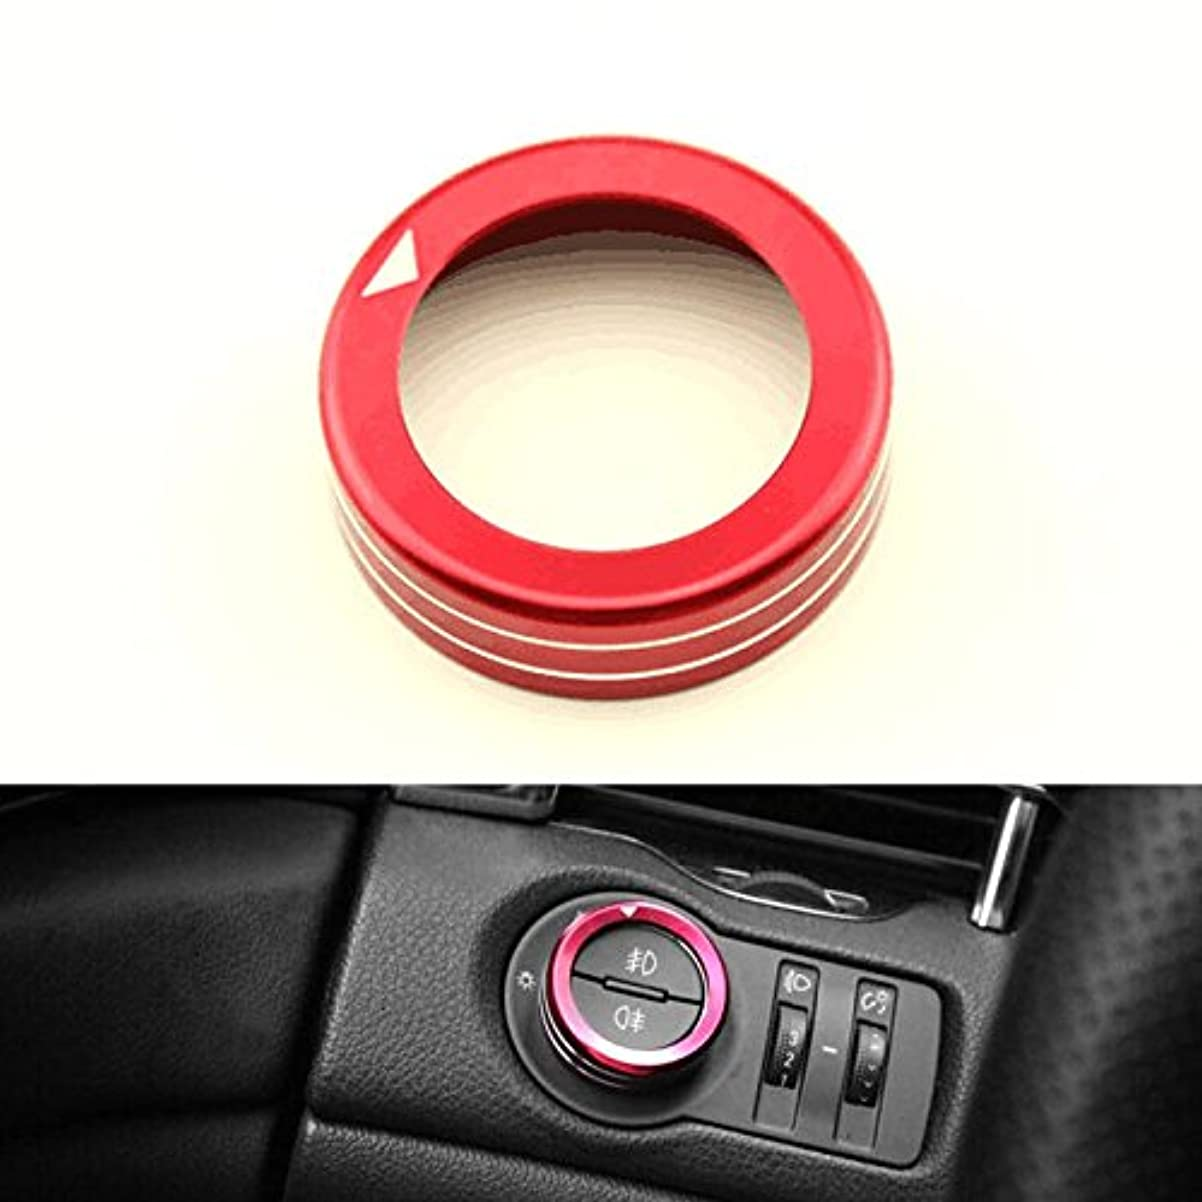 繁雑したがって請求書Jicorzo - For Chevrolet Cruze Red Car Head Light Adjust Switch Button Cover Ring Trim Aluminum Automobile Styling Accessories 2009-2014